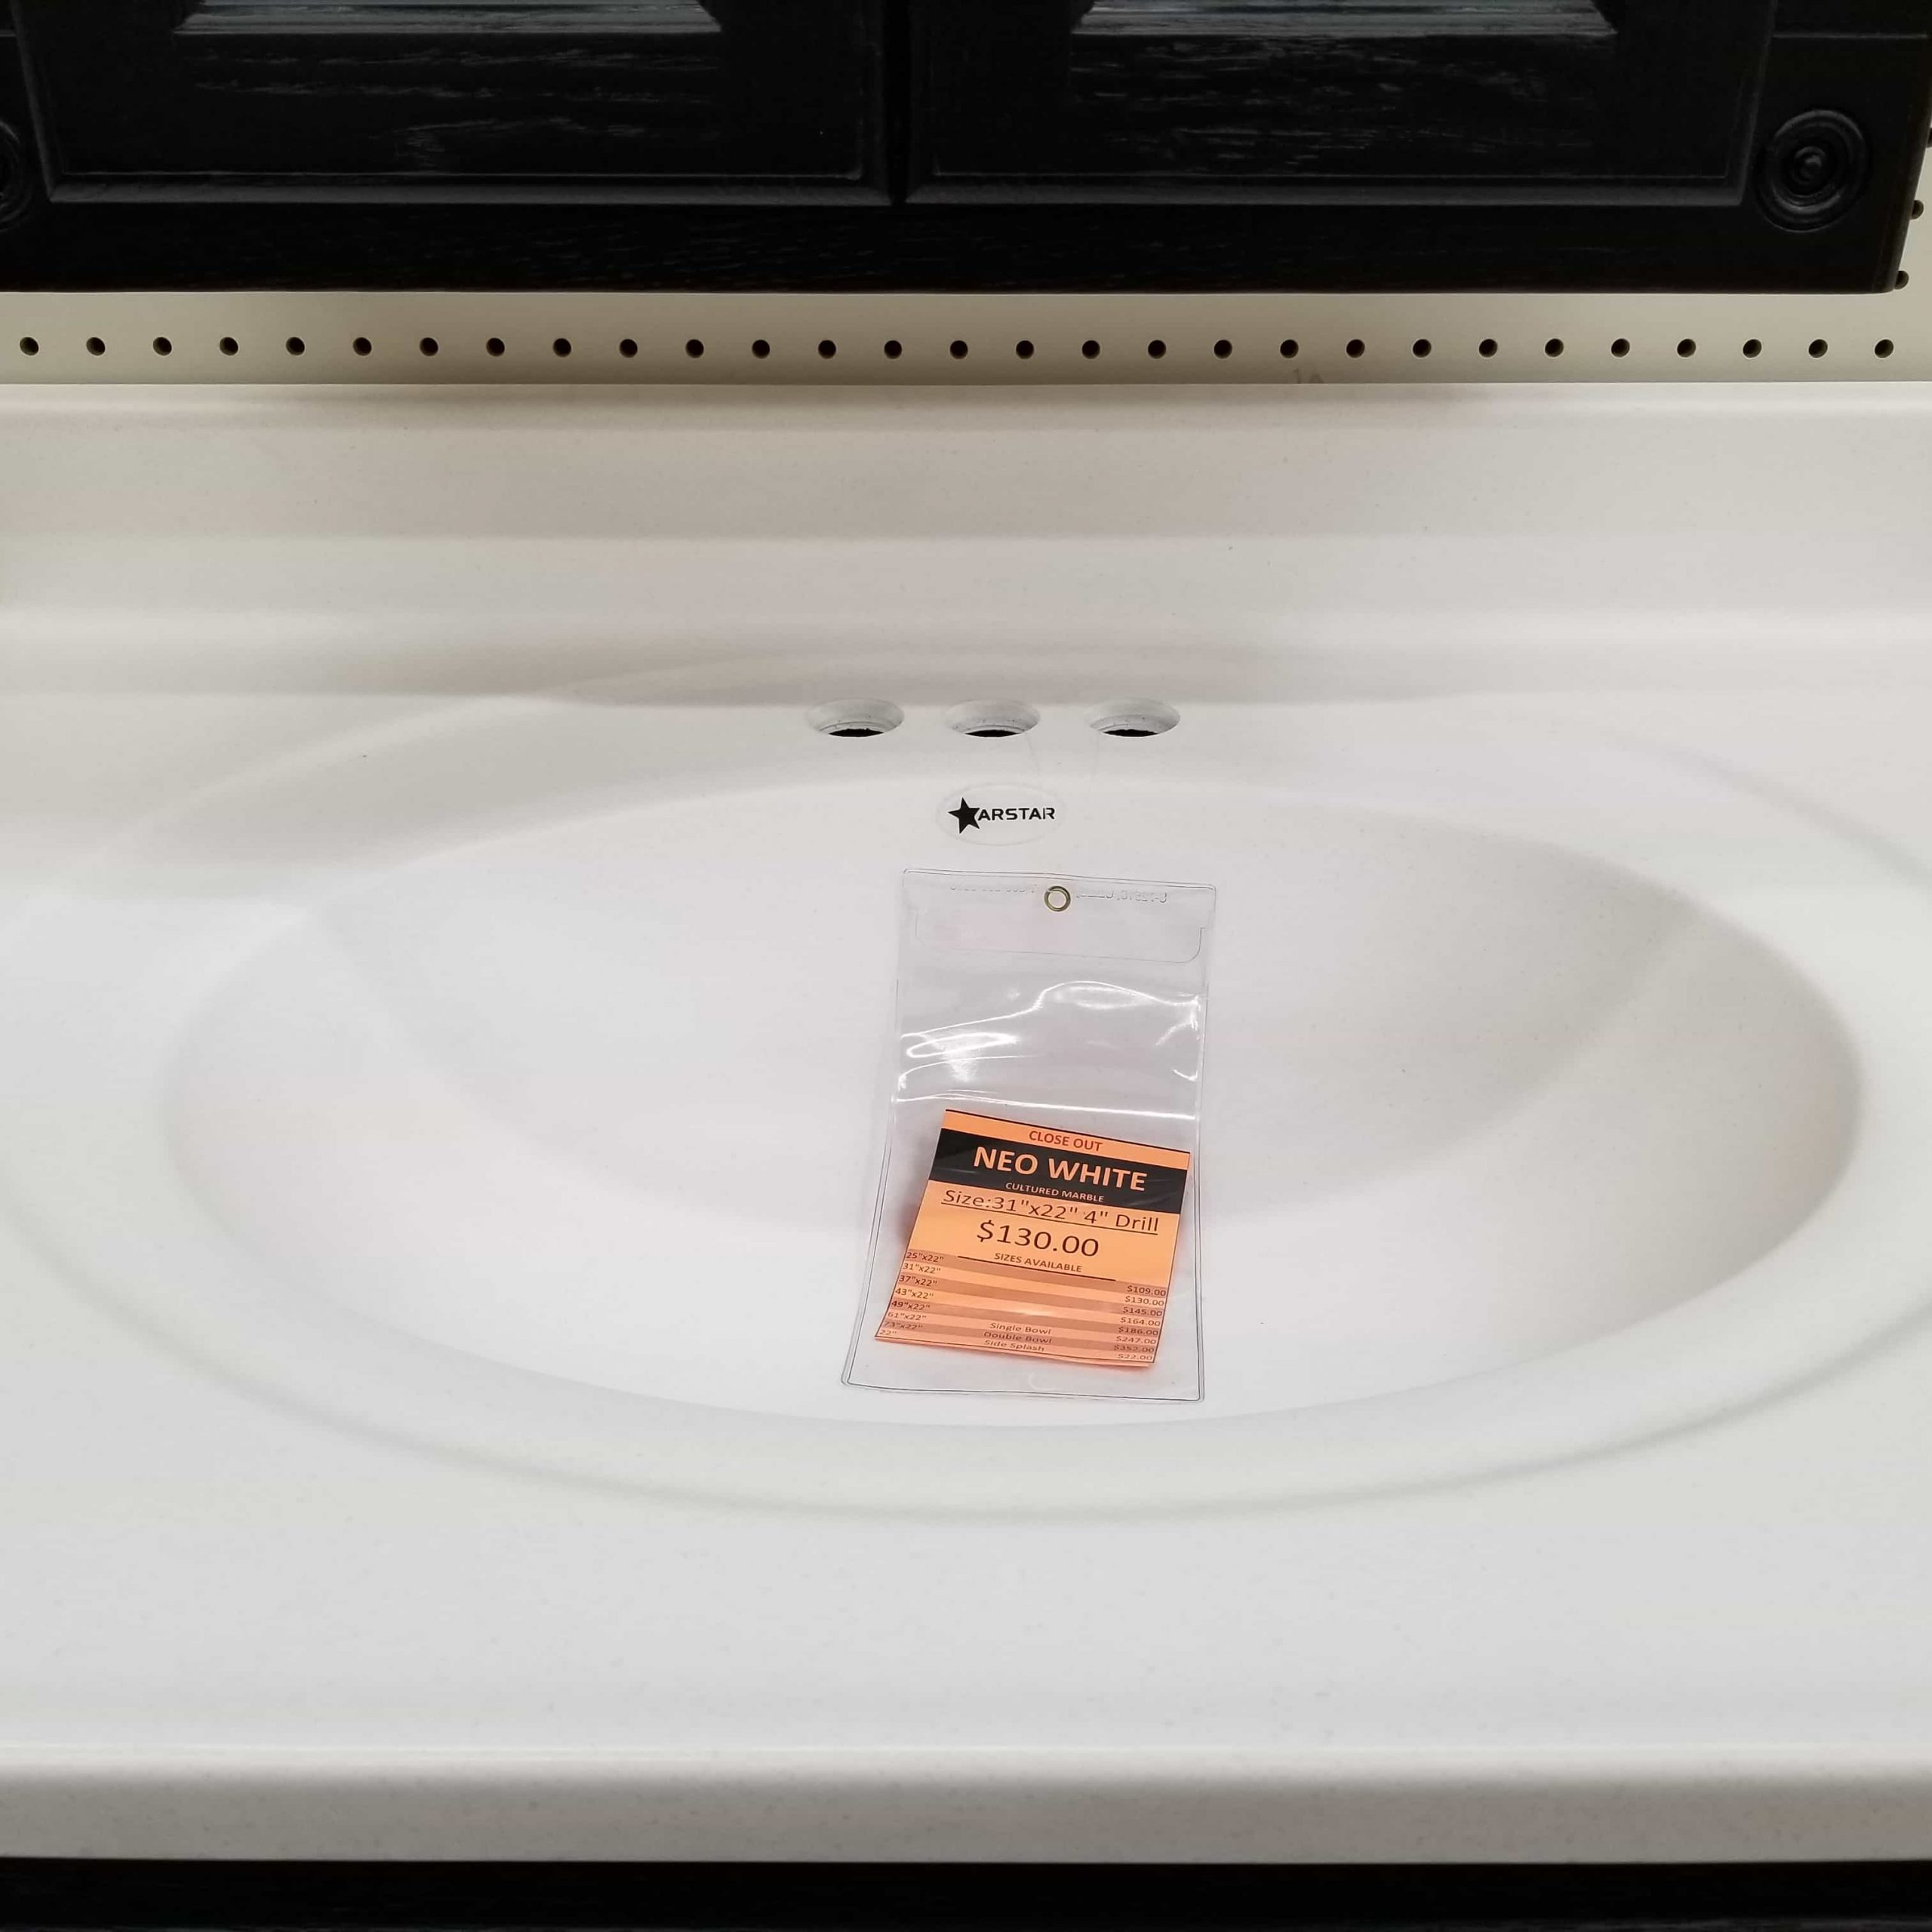 neo white cultured marble vanity top